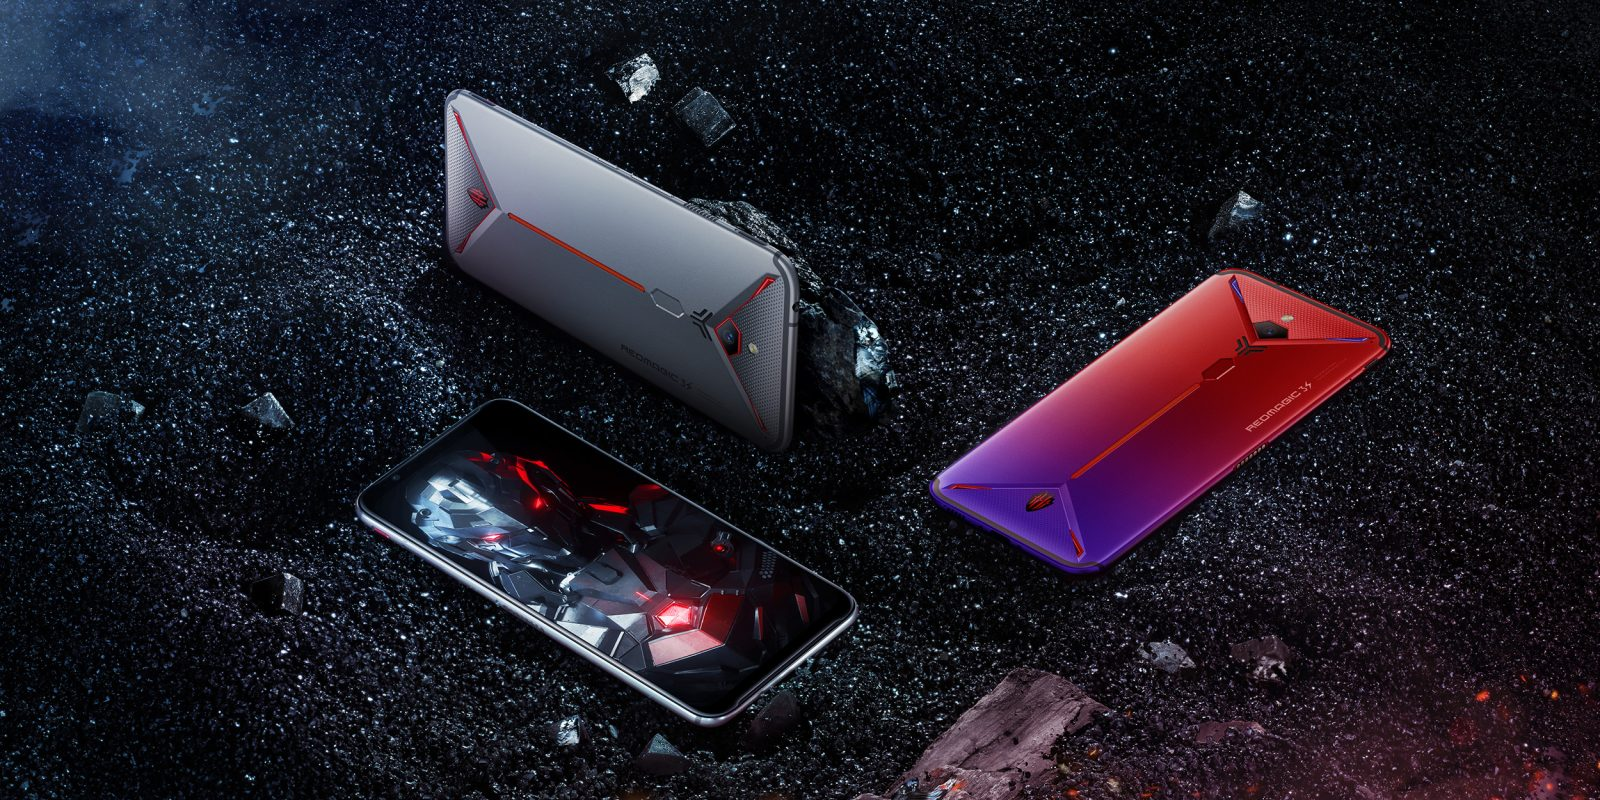 nubia-red-magic-5g-144hz-5g-gaming-phone-launching-at-mwc-2020